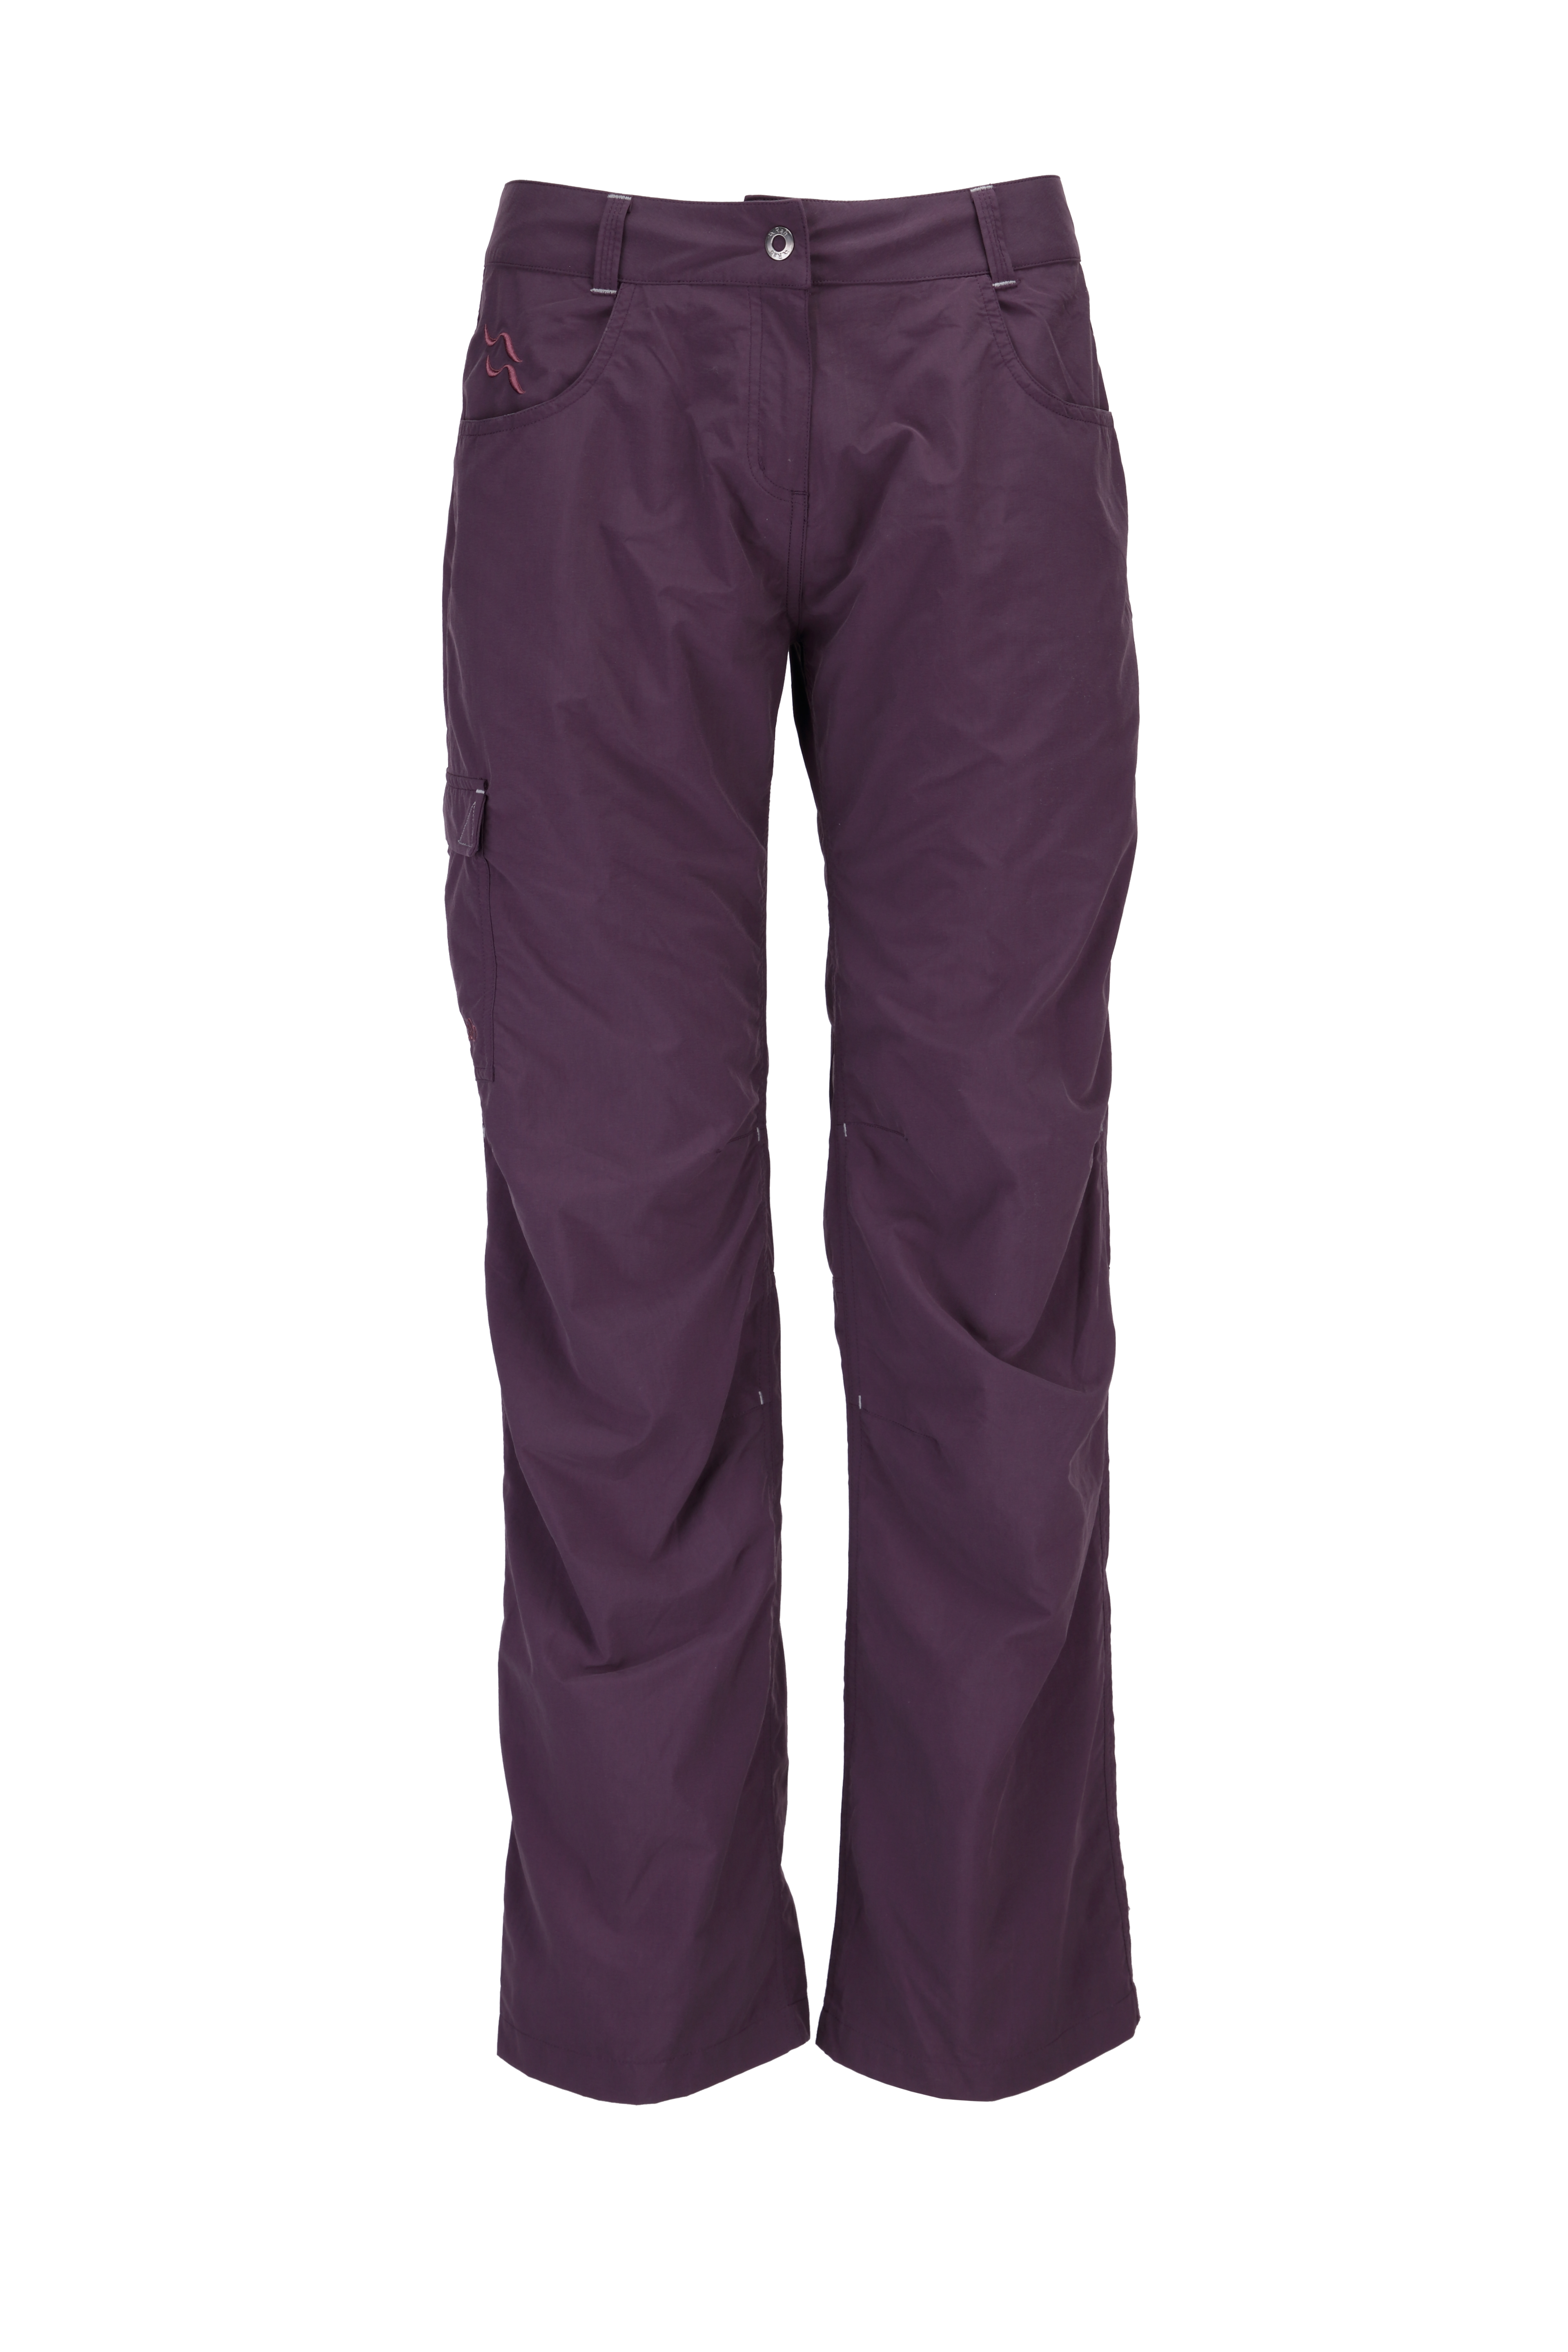 Outdoor Clothing Rab Womens Solitude Pants Cosmos